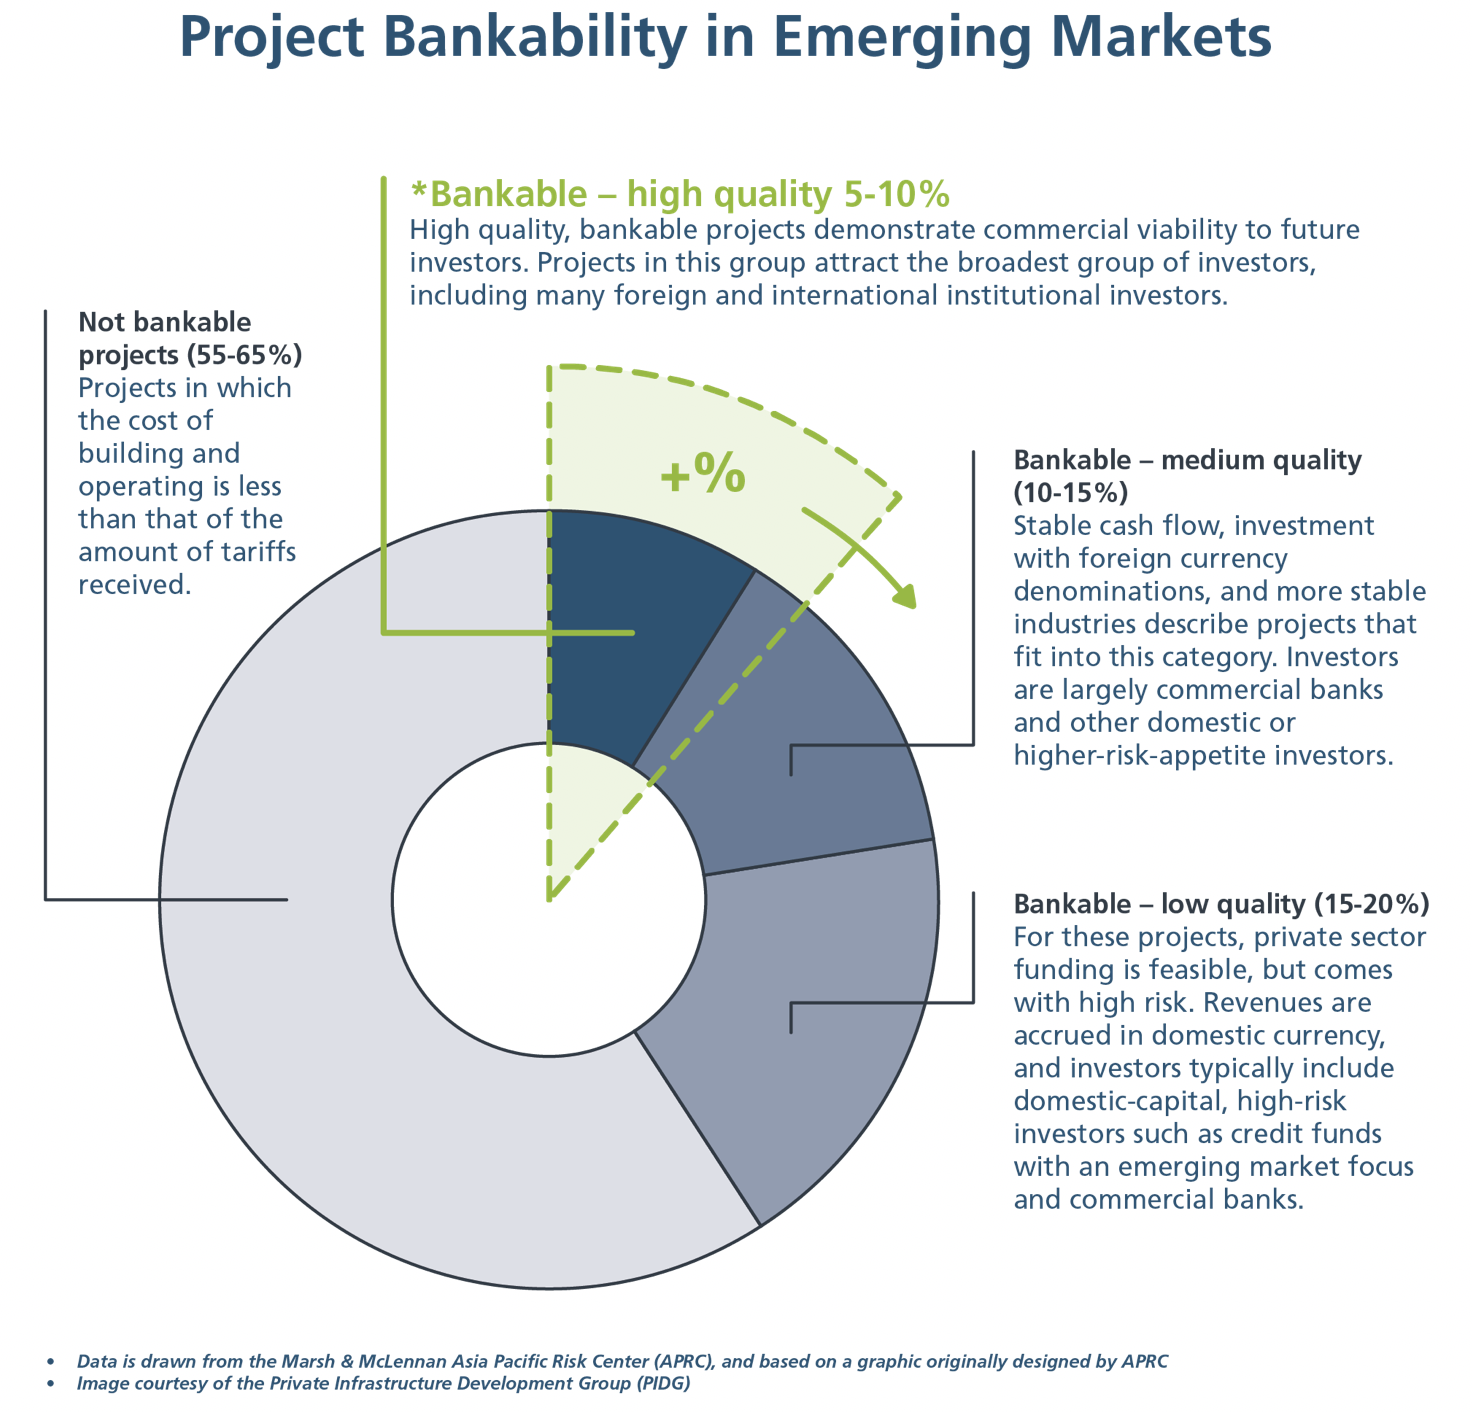 The project bankability situation in emerging markets